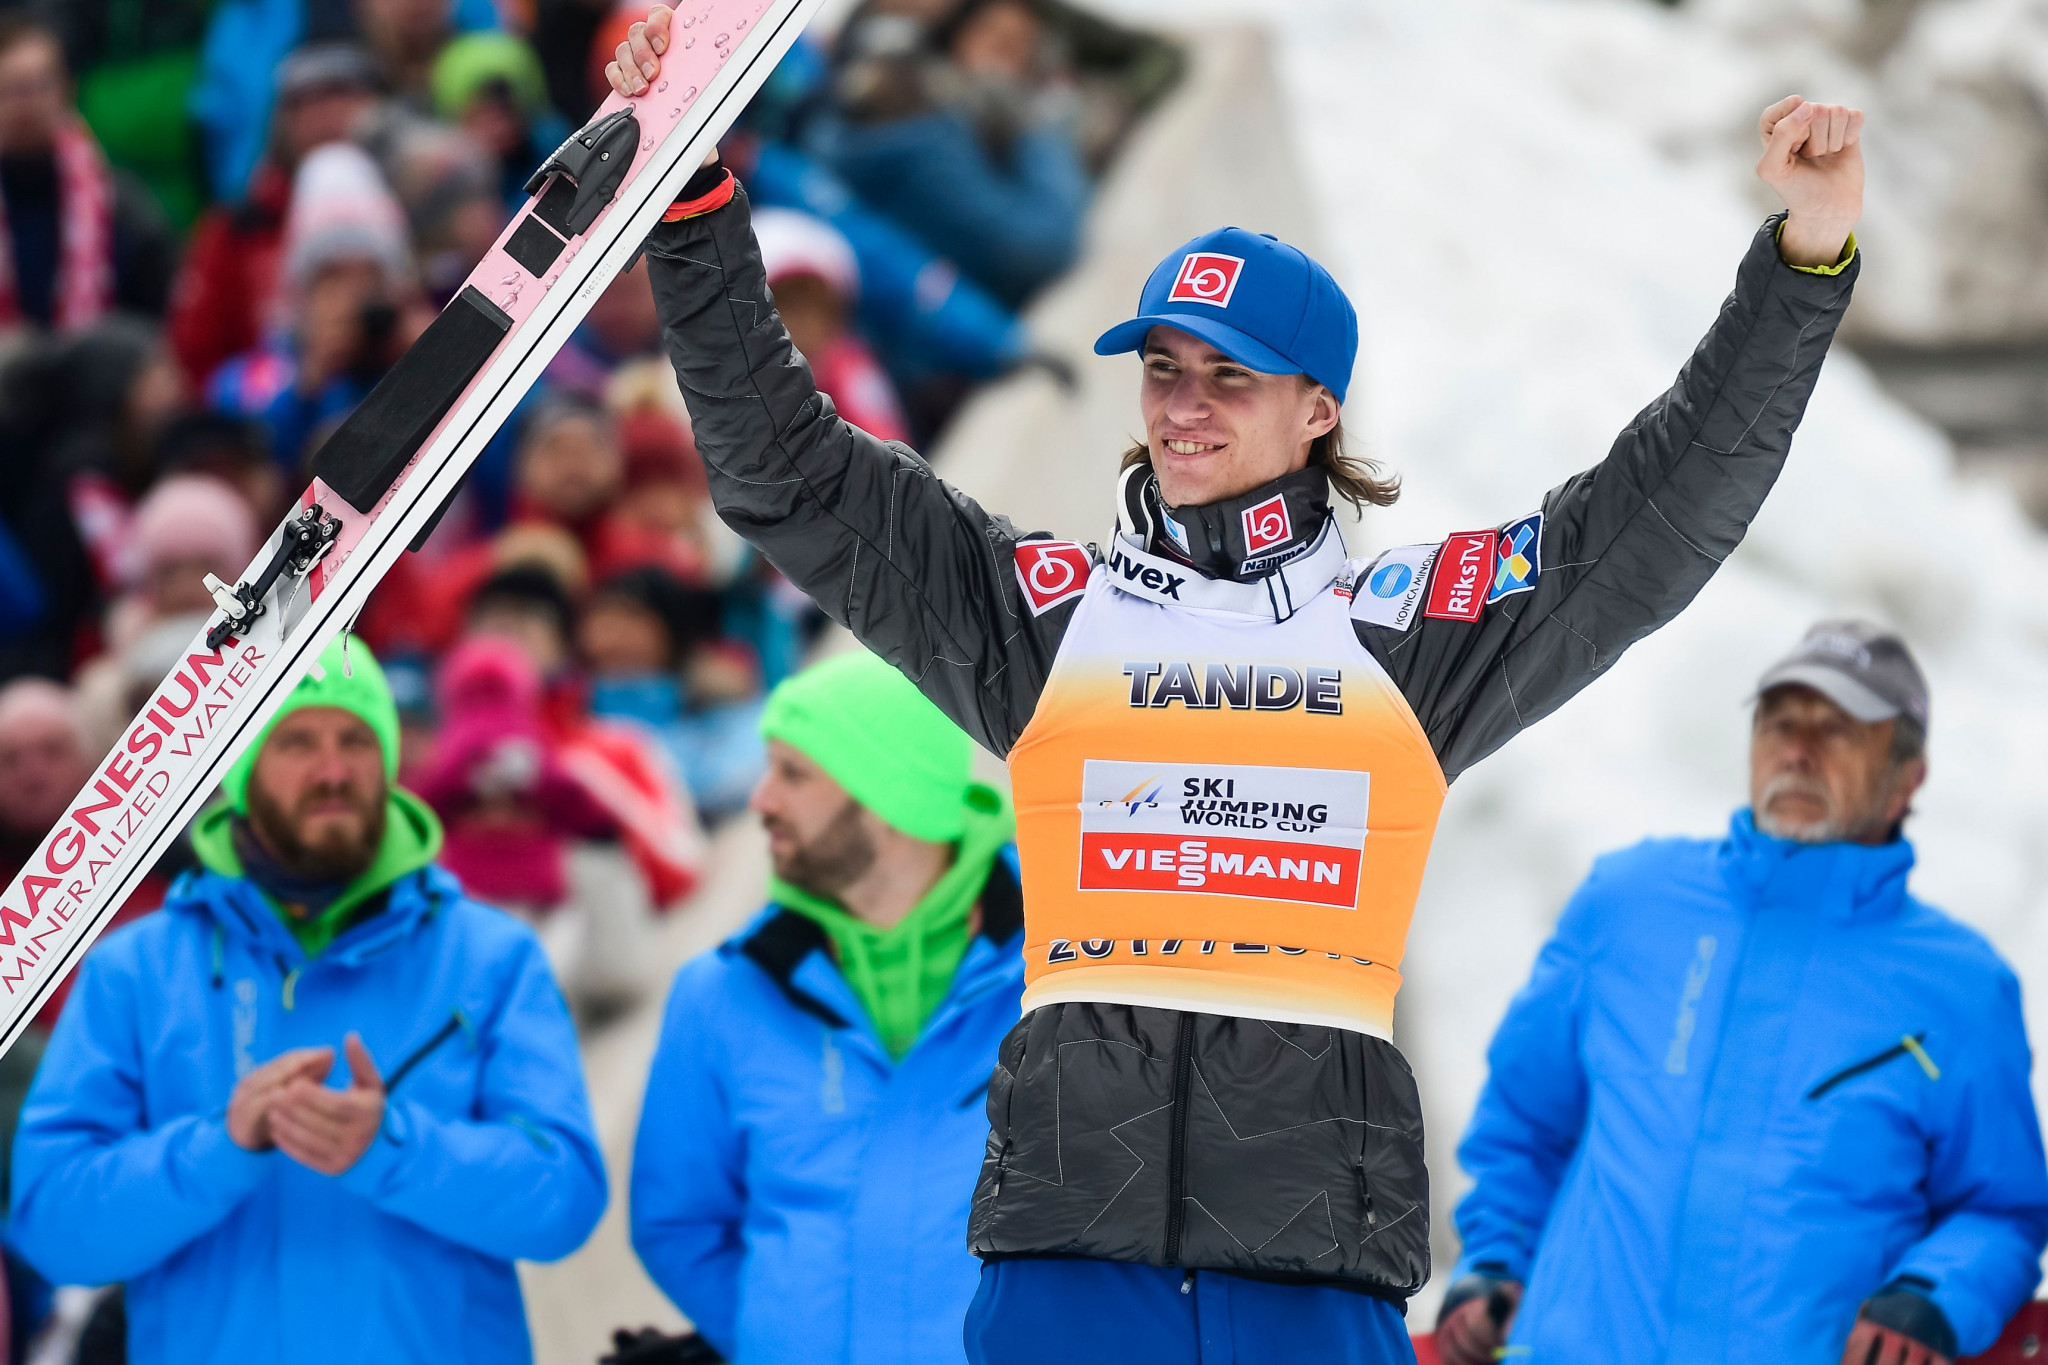 Olympic ski jumping champion Tande reveals battle against rare disease